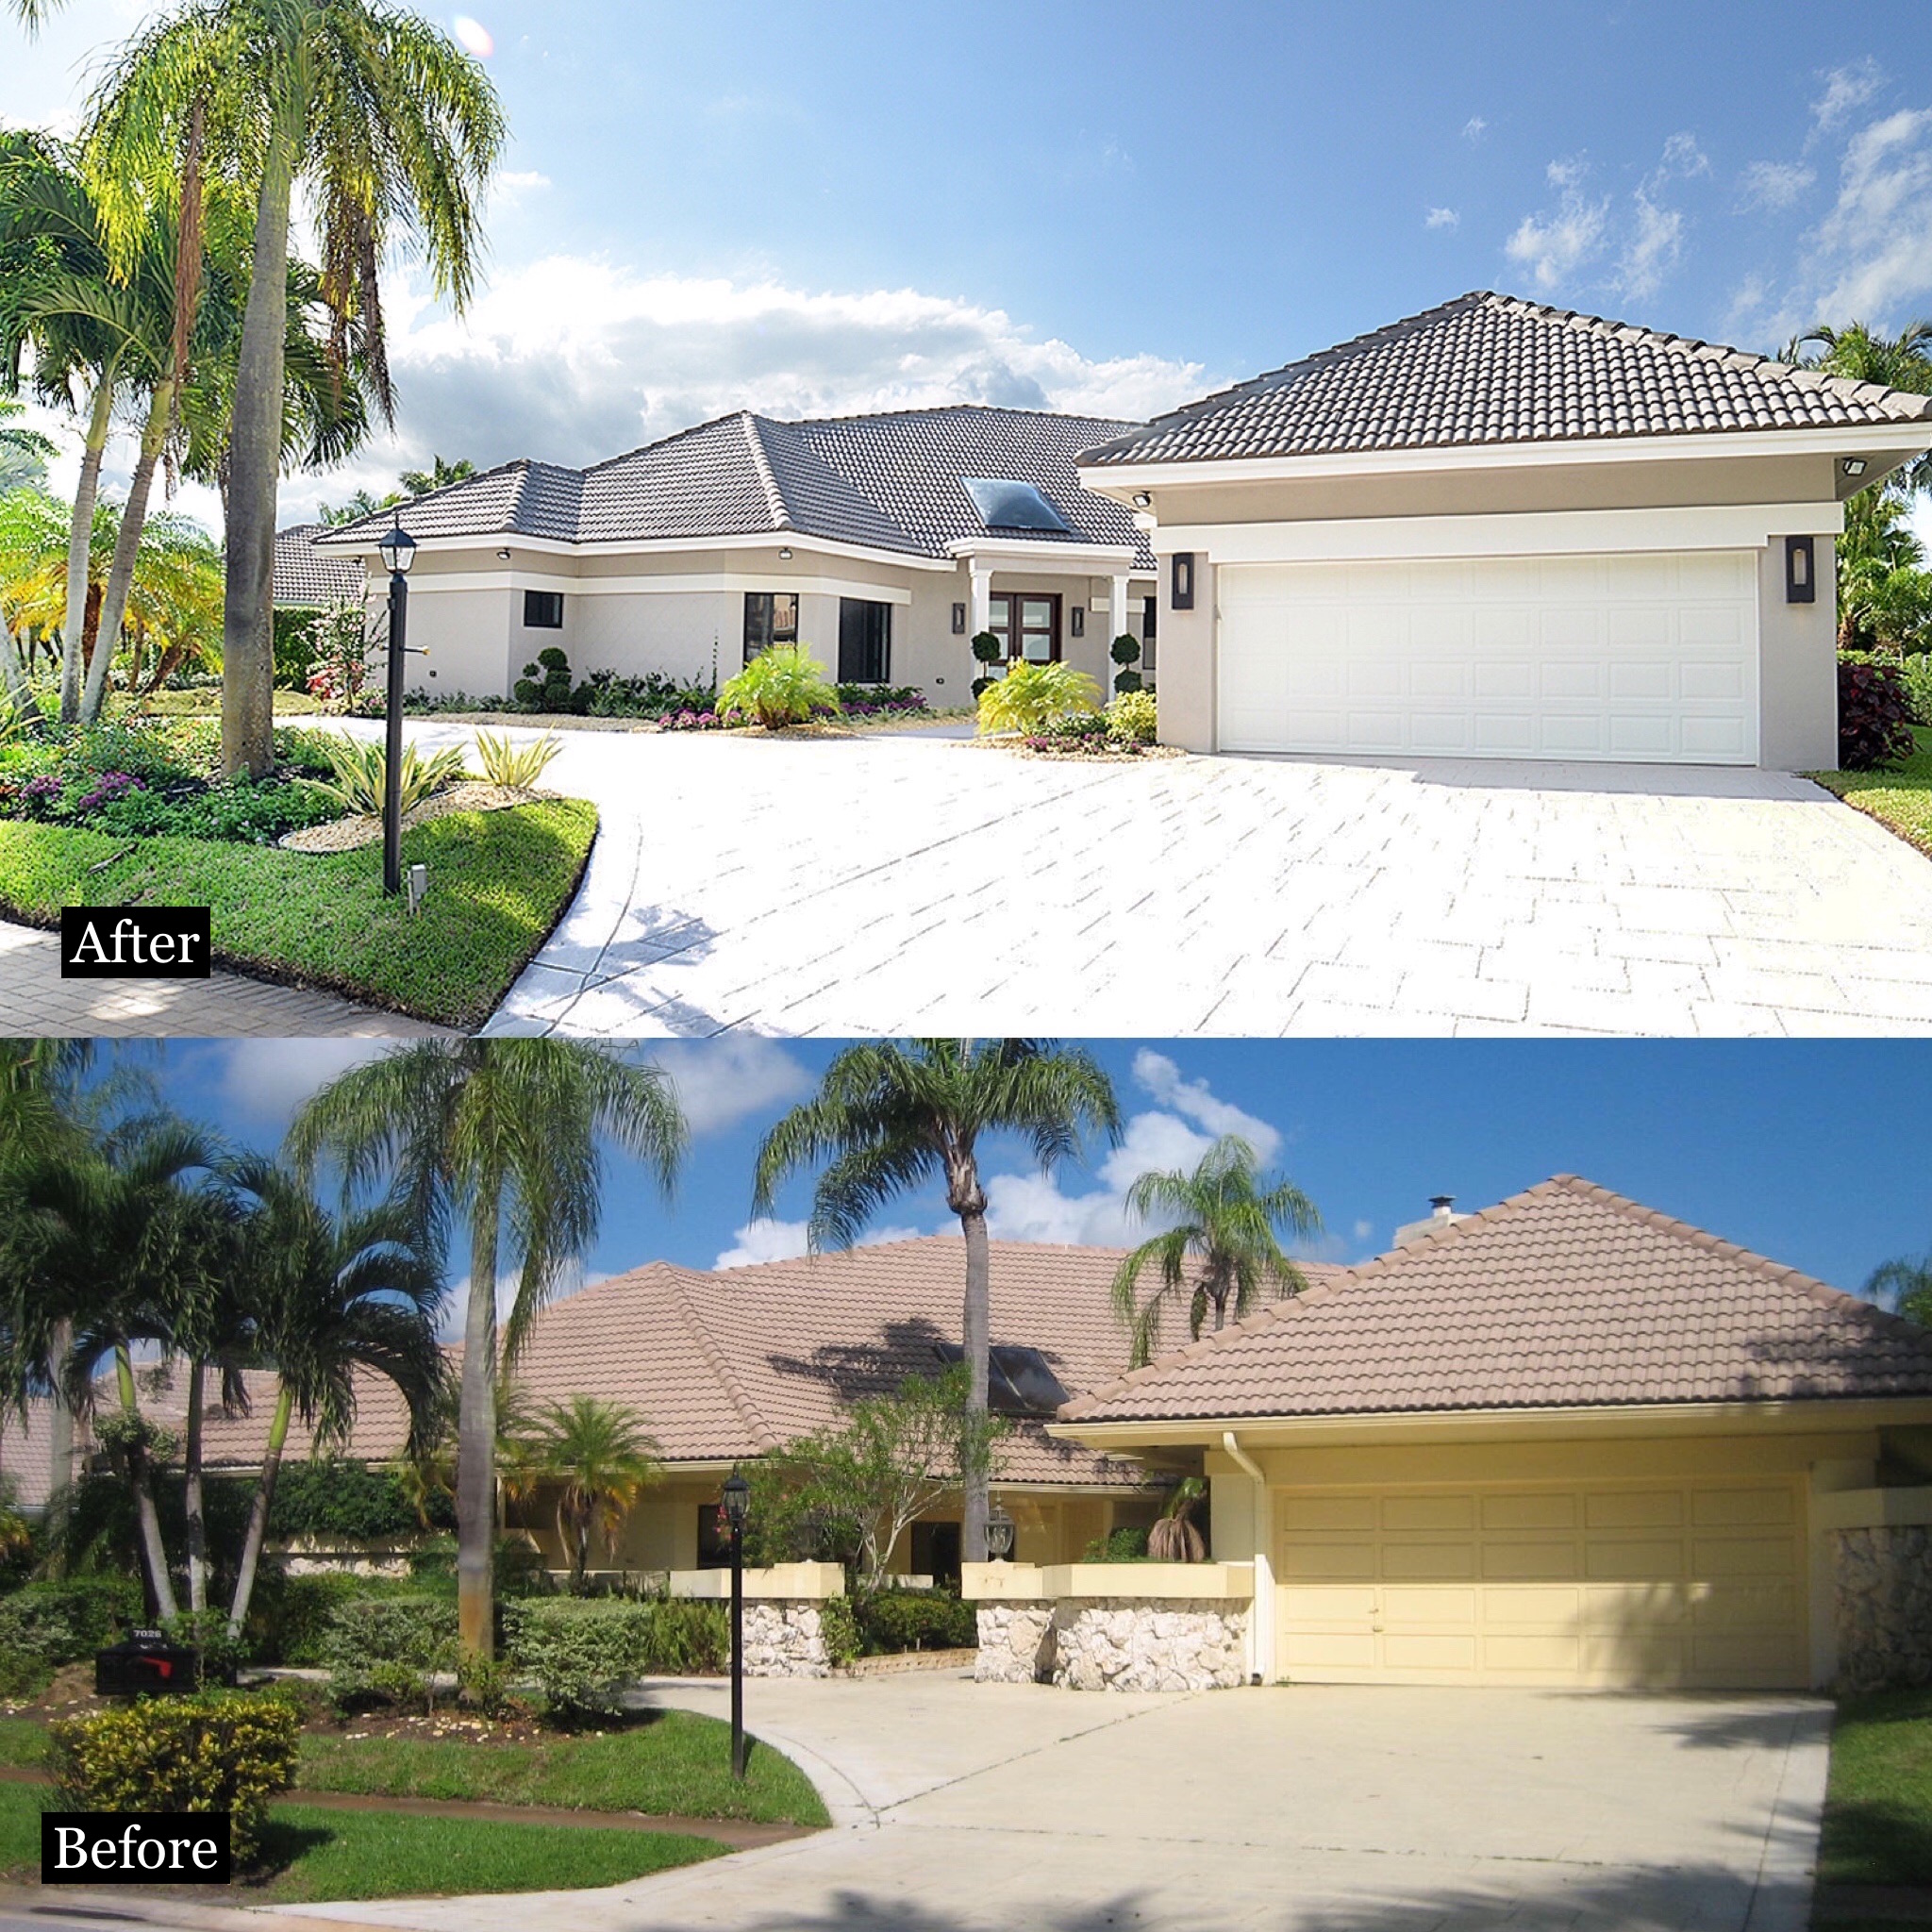 mag real estate & development transformation before after construction general contractor builder renovation south florida boca raton new custom luxury home for sale interior design st. andrews country club 7026 ayrshire lane 1.jpg